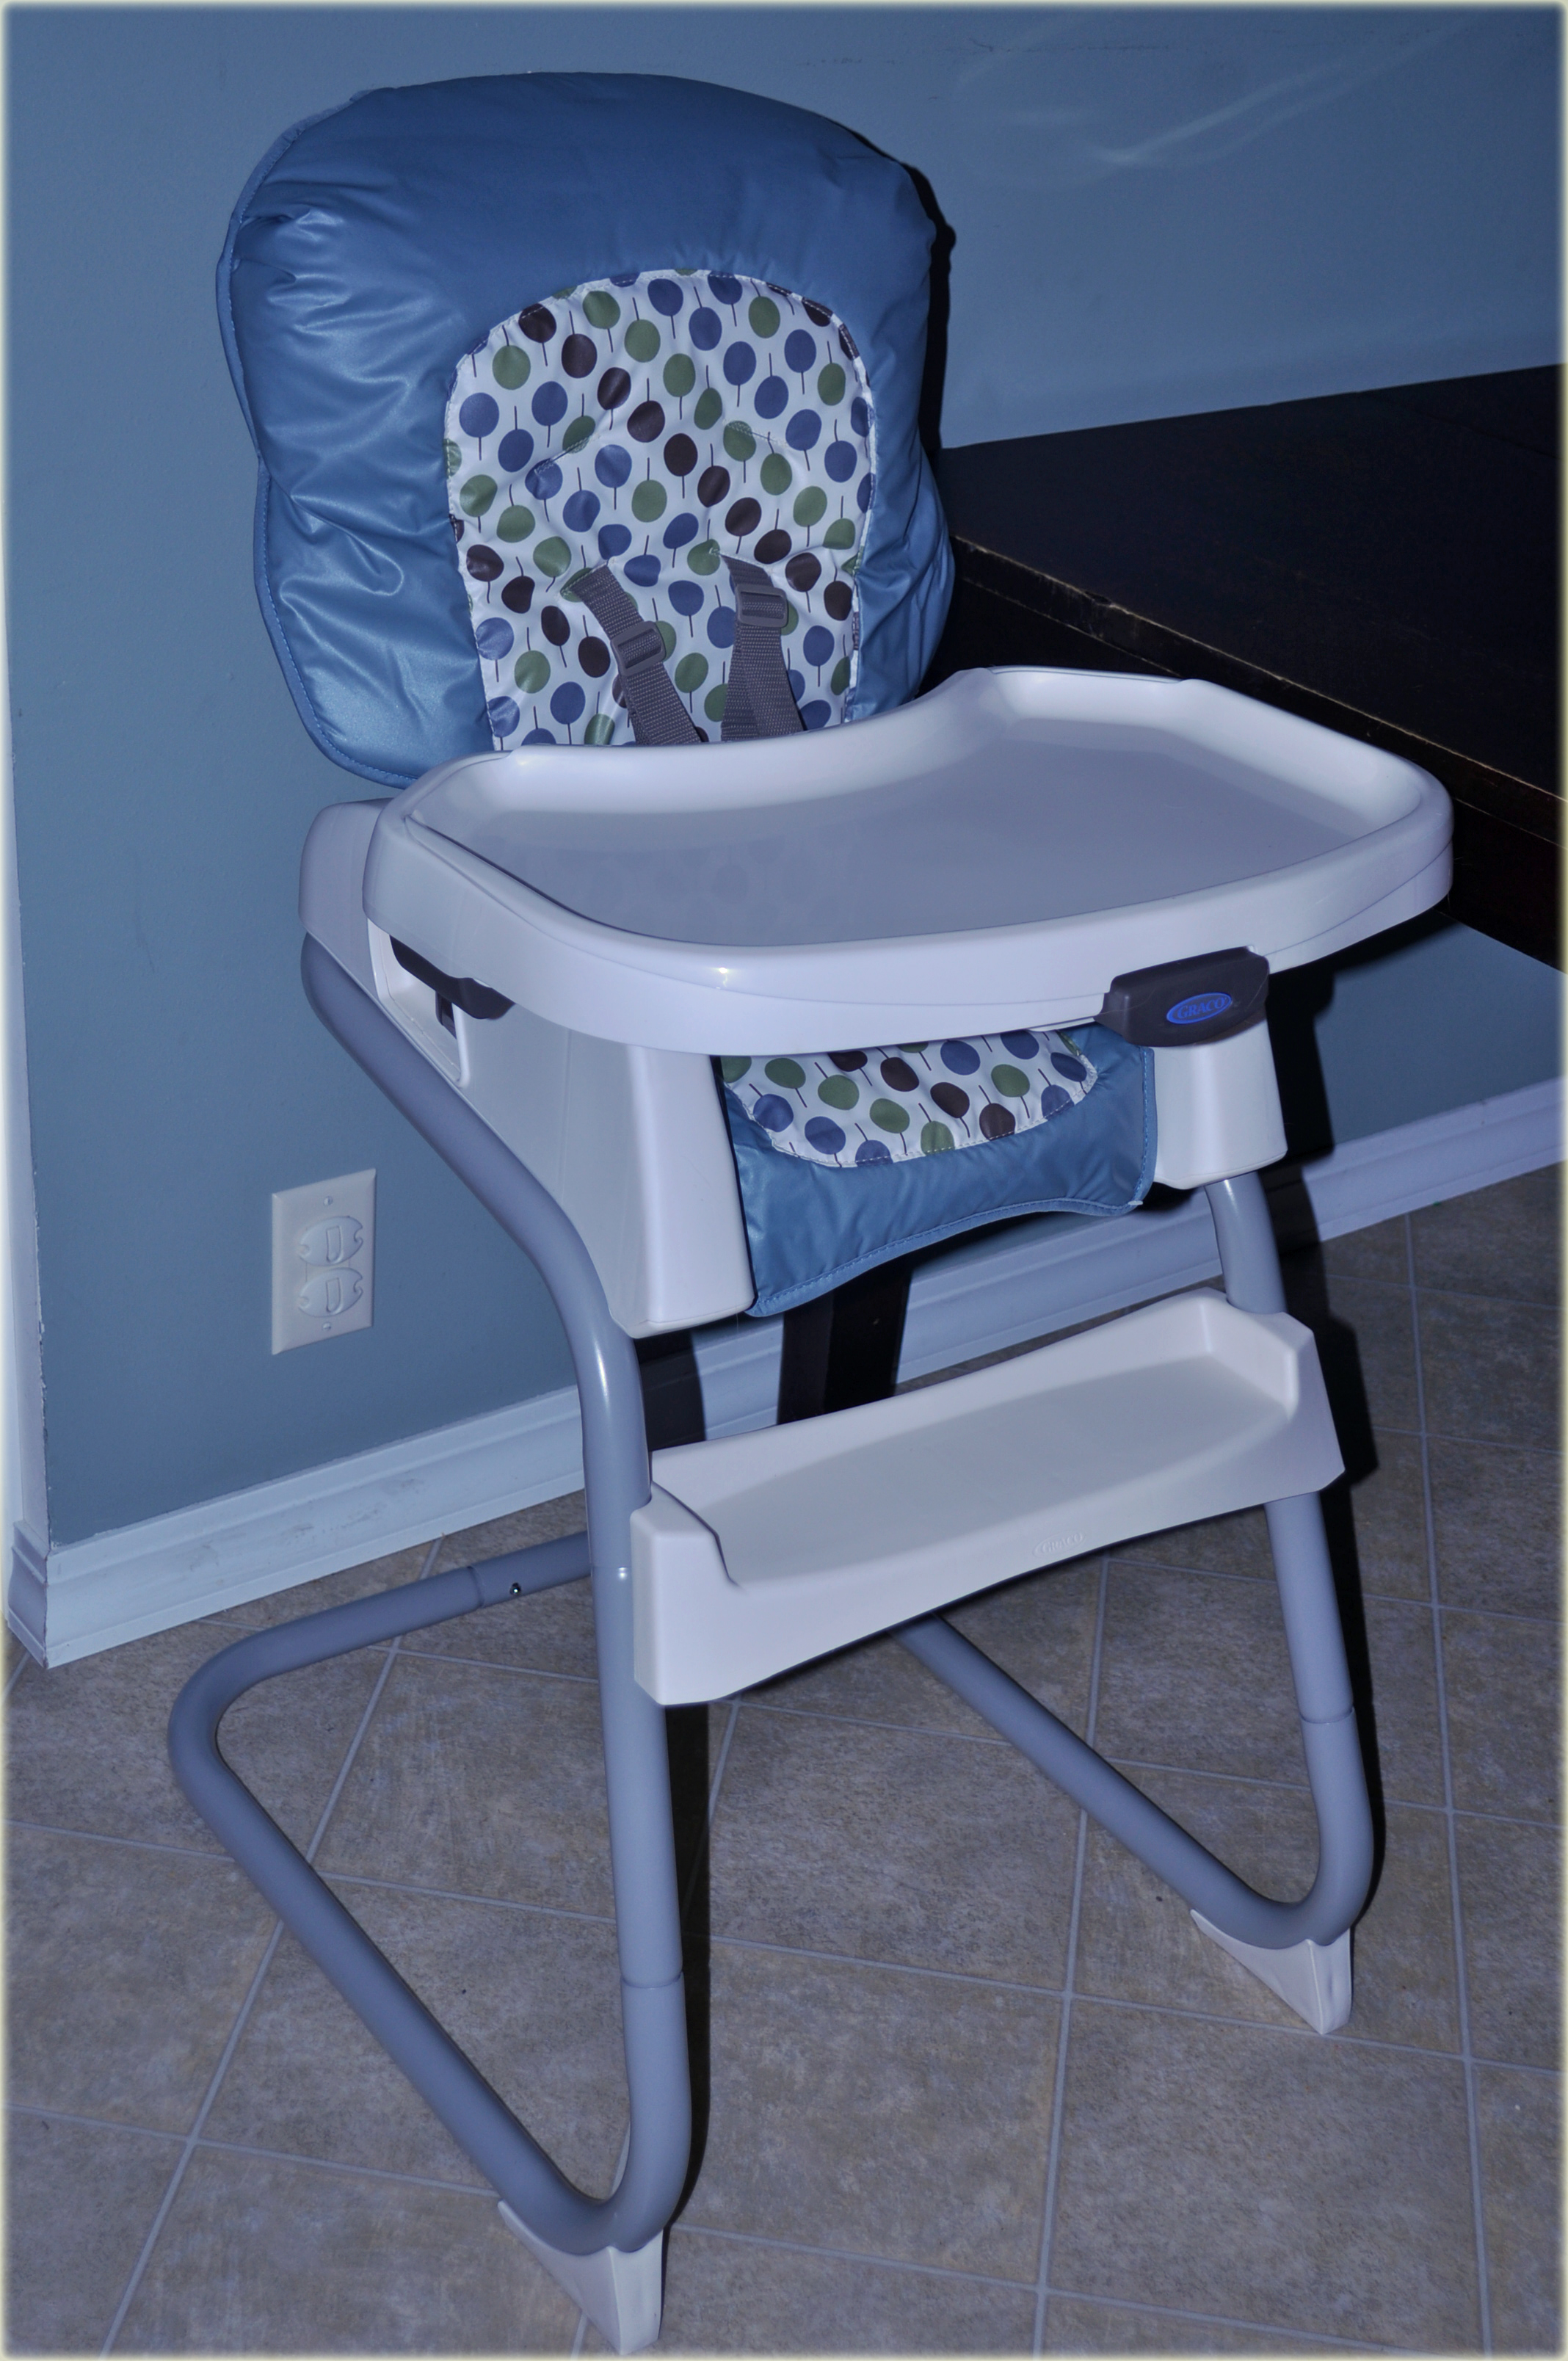 Graco s Newest Baby Gear Ready2Dine Highchair & Breaze Connect